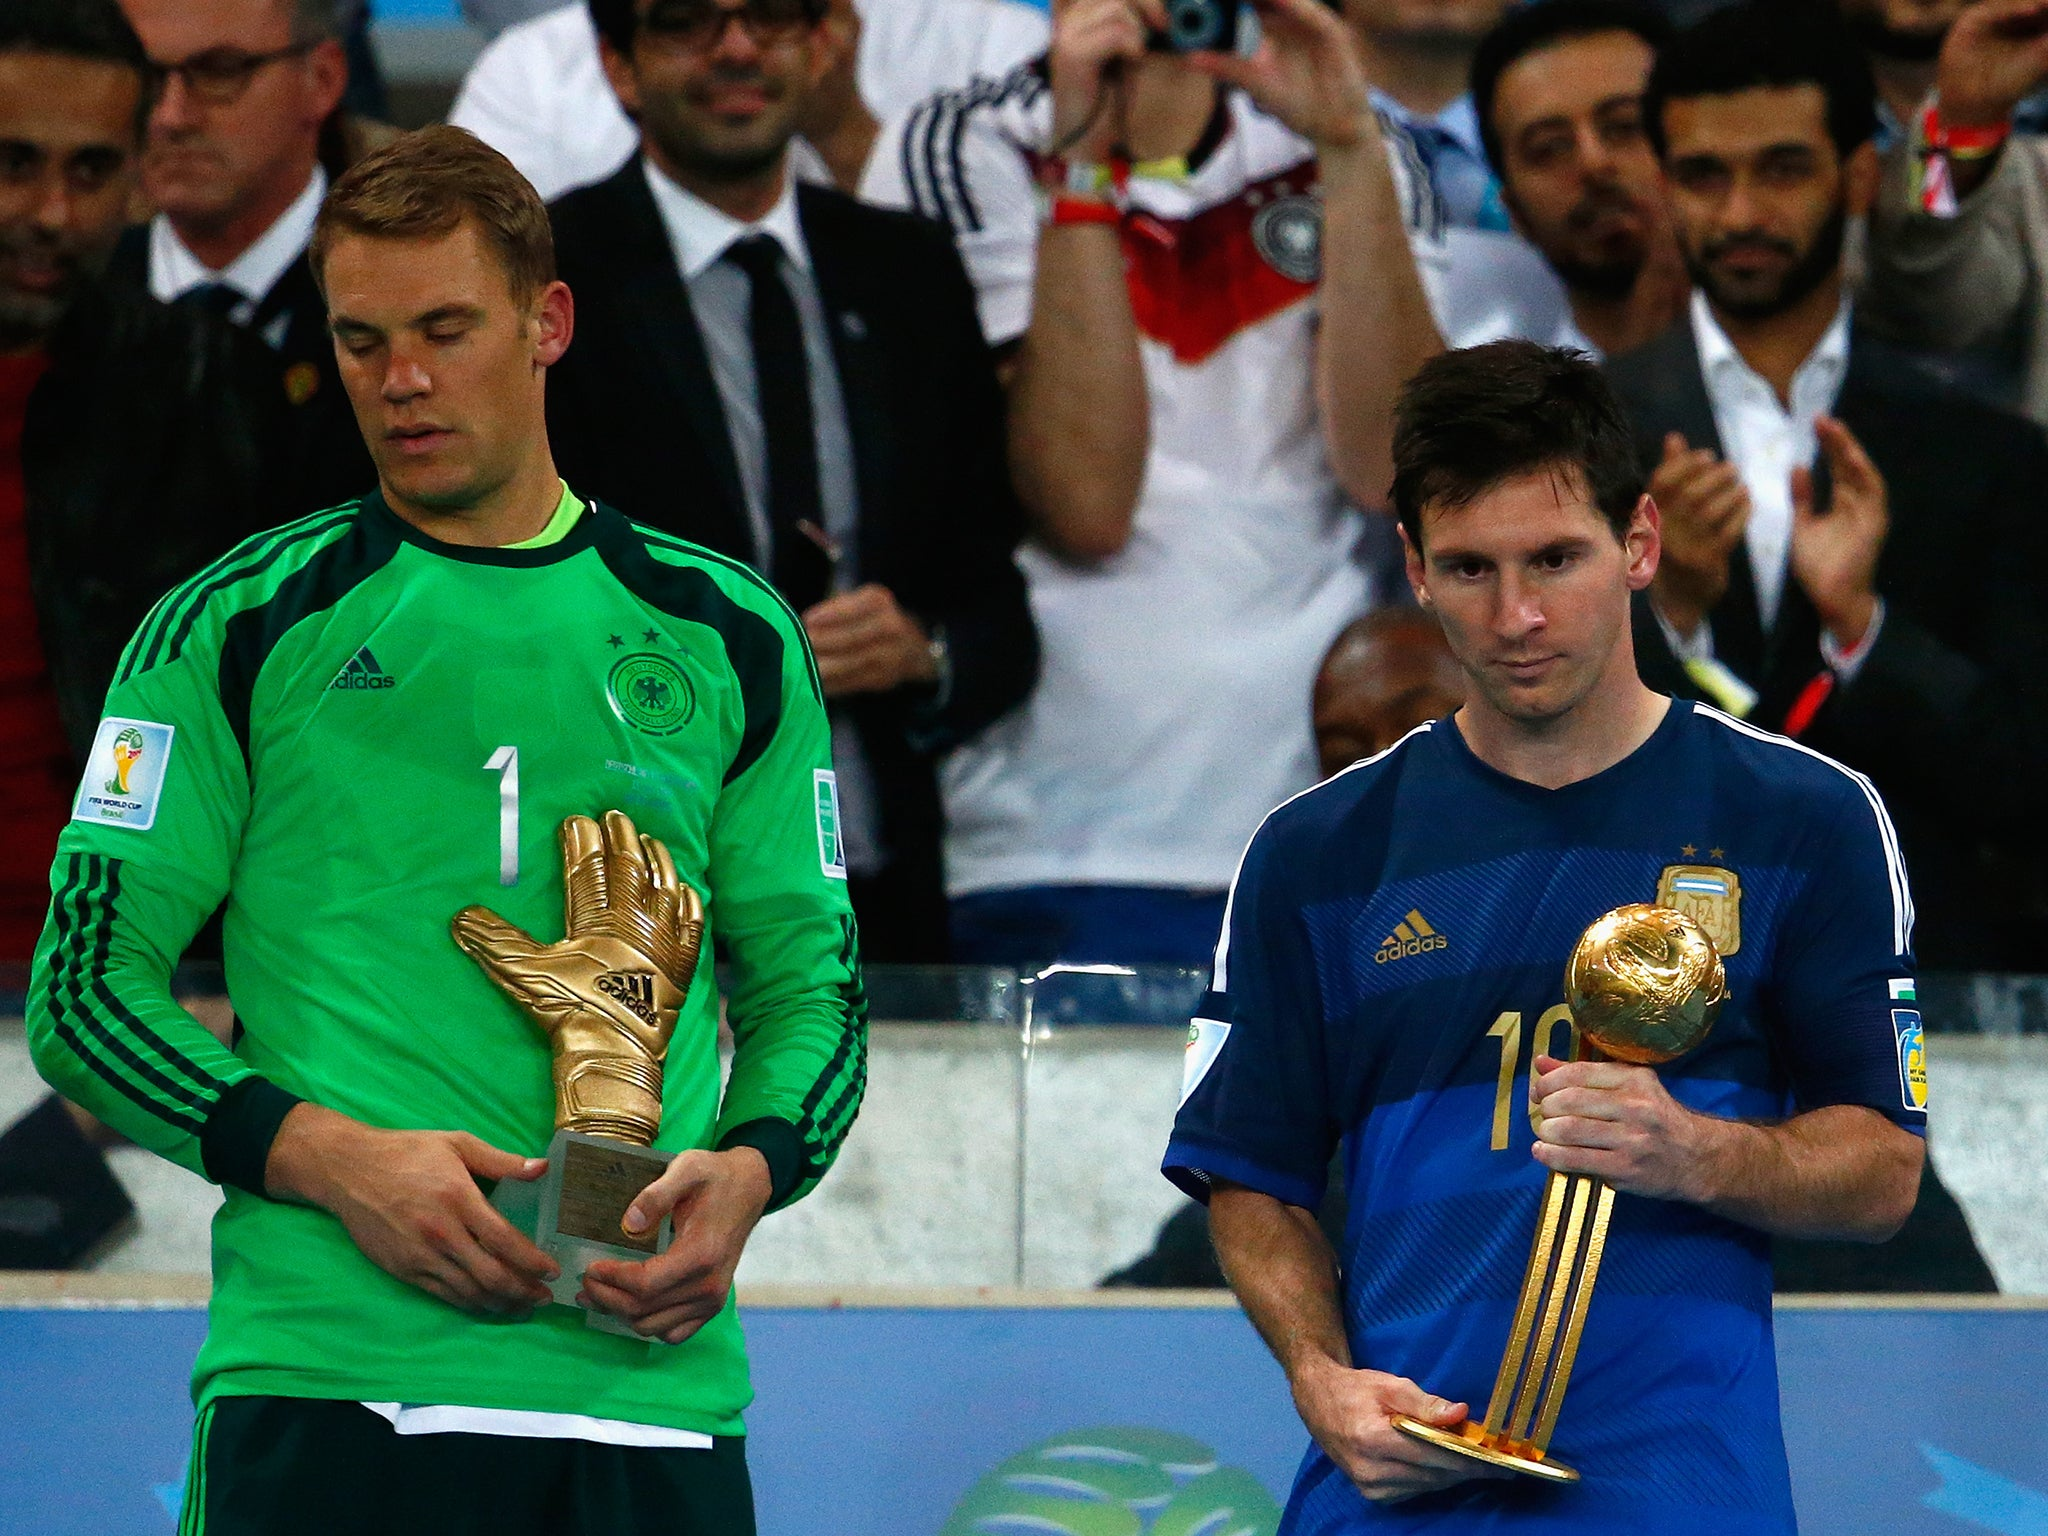 World Cup 2014 Lionel Messi Upset Angry And The Golden Ball Means Nothing The Independent